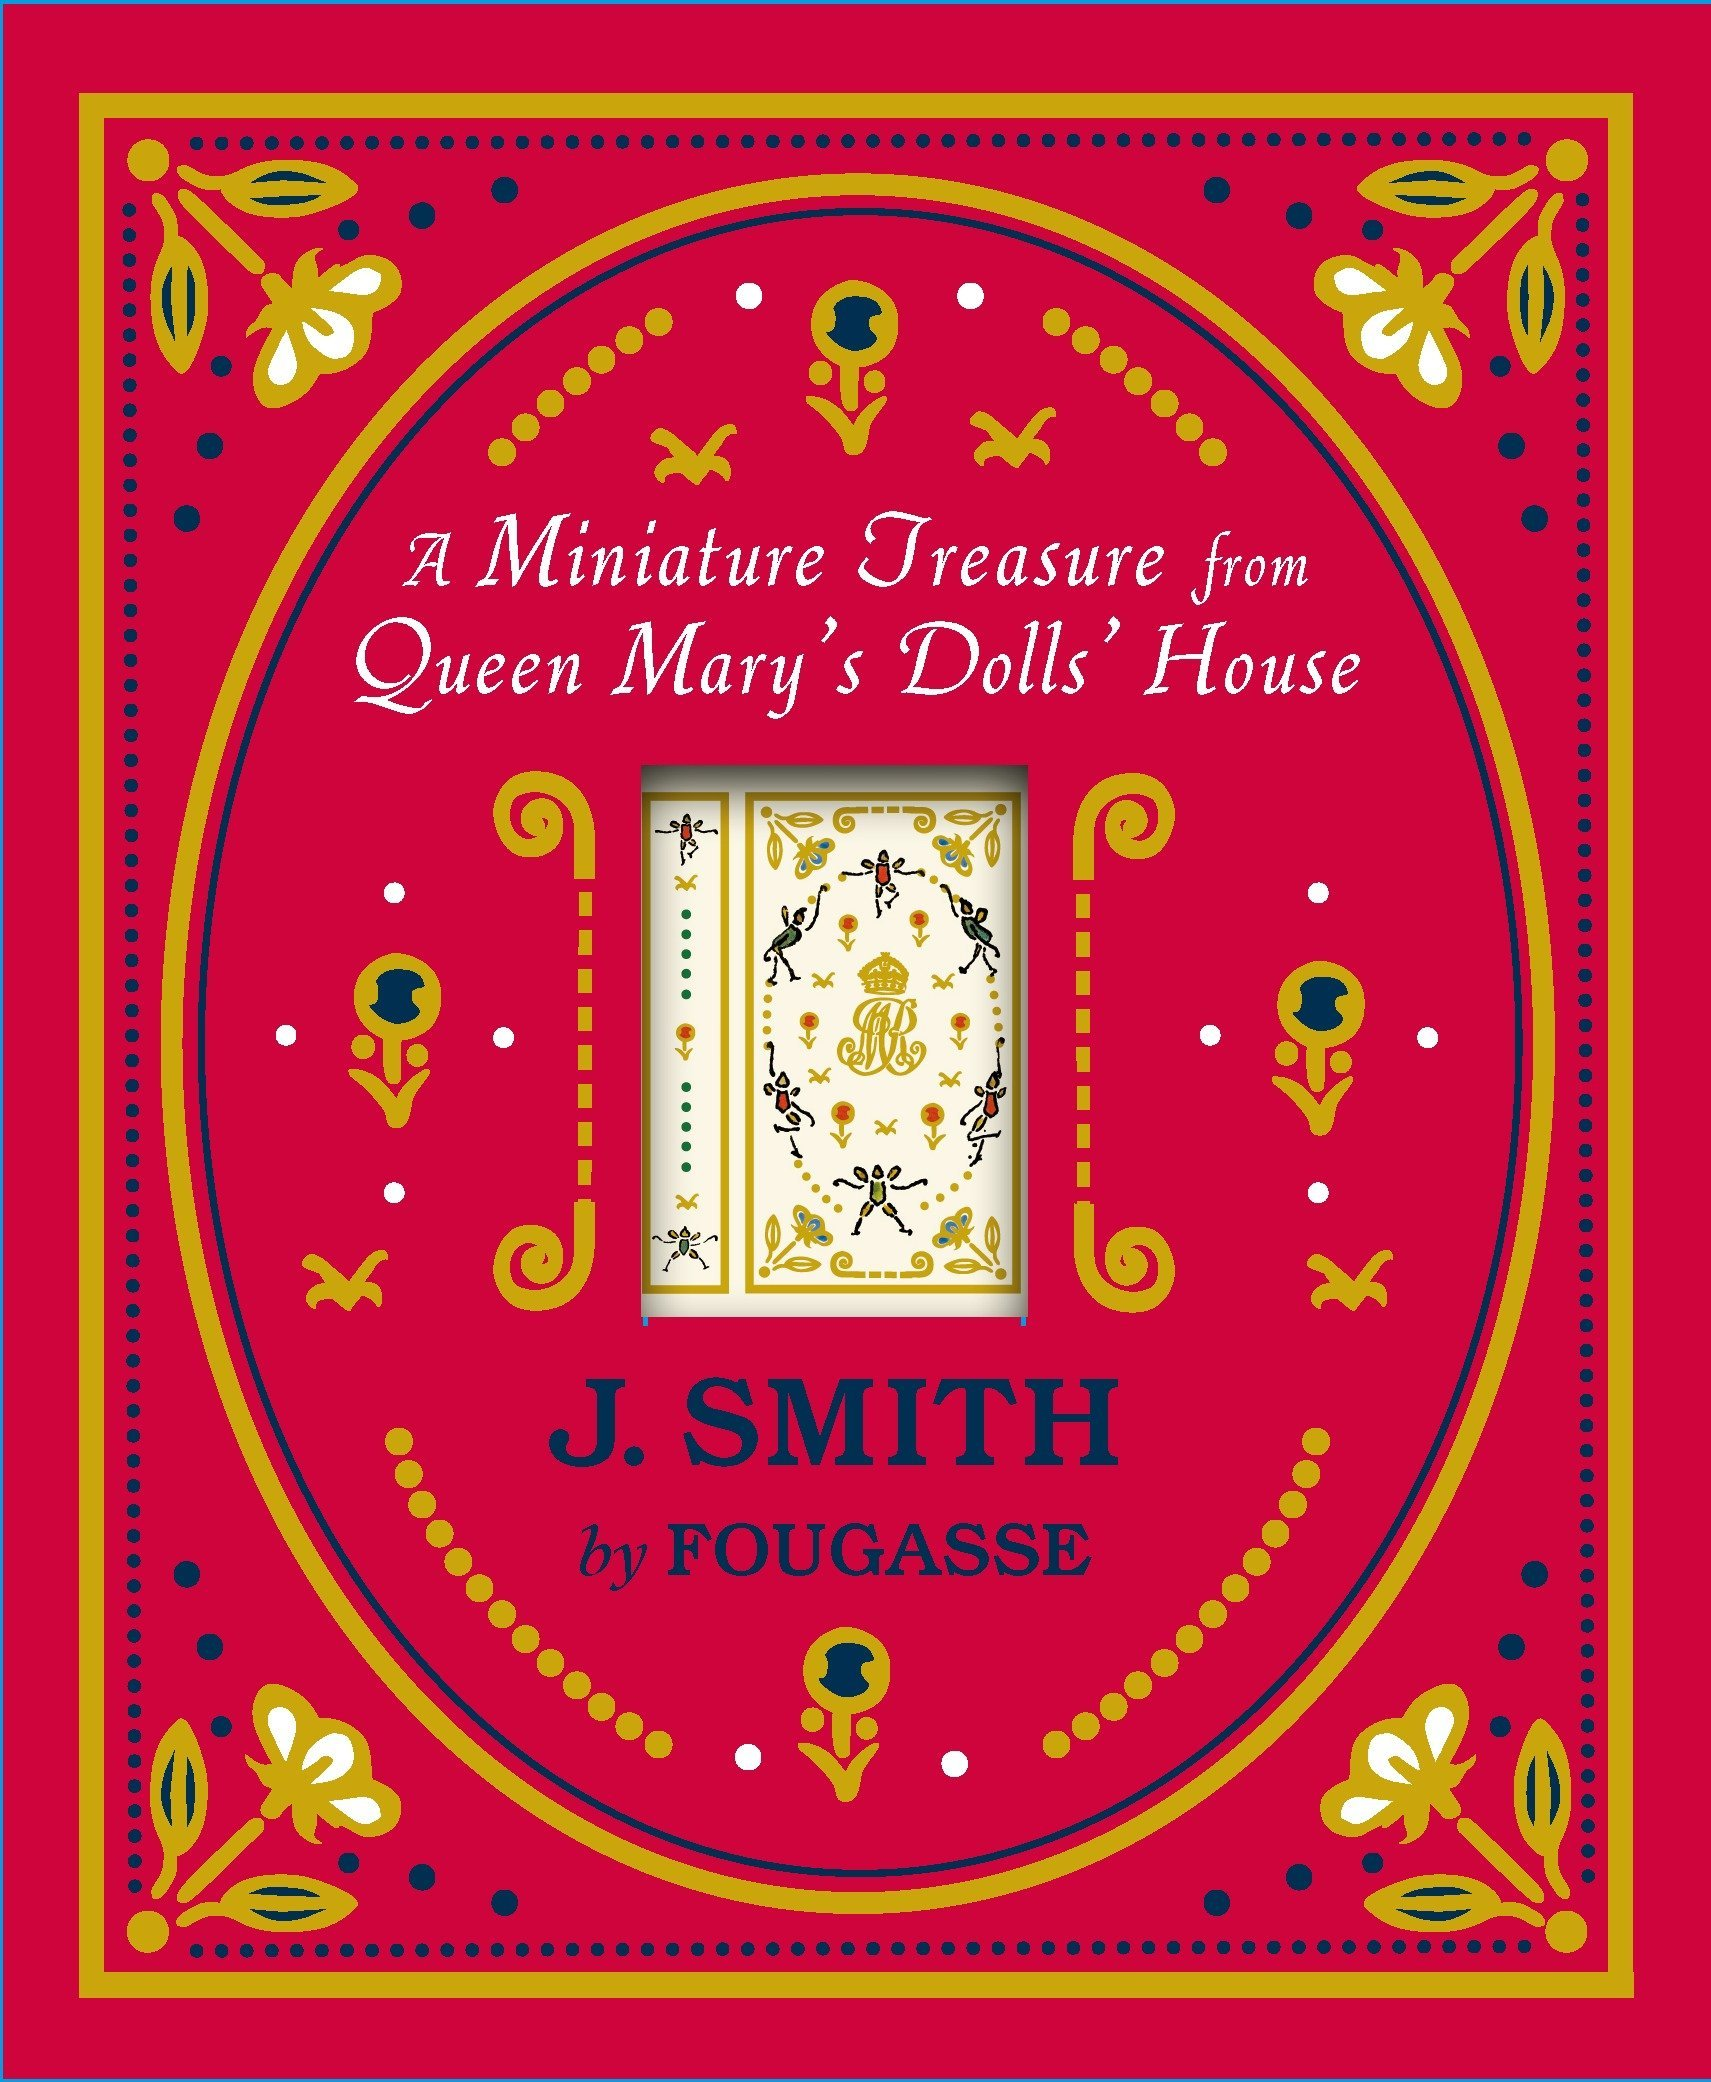 Download J. Smith by Fougasse Miniature Queen Mary's Dollhouse Facsimile Book ebook